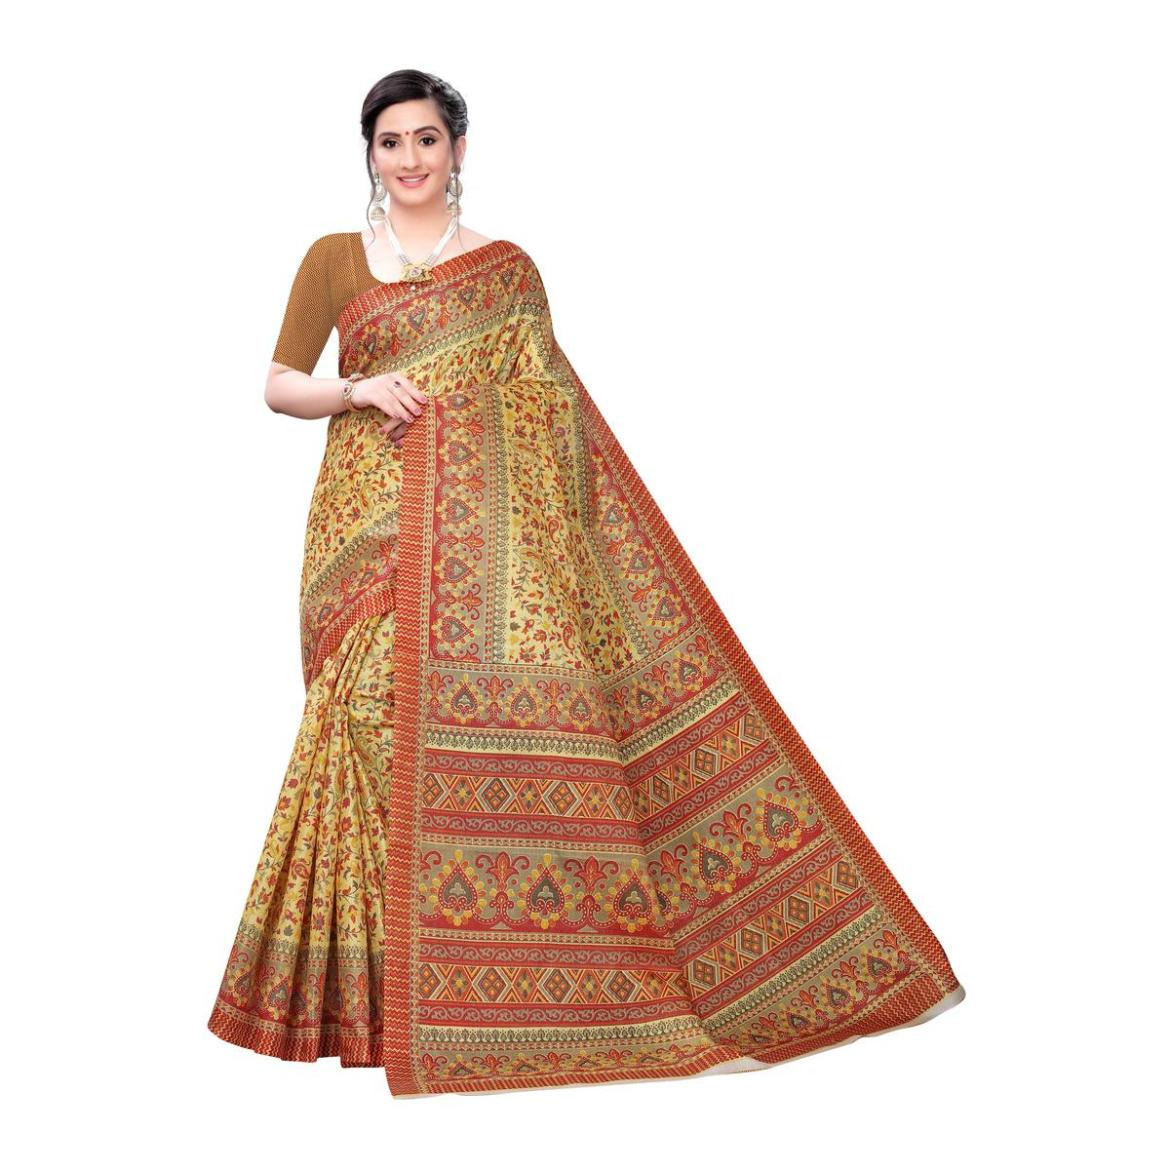 Desirable Mustard Yellow Colored Casual Wear Printed Cotton Saree